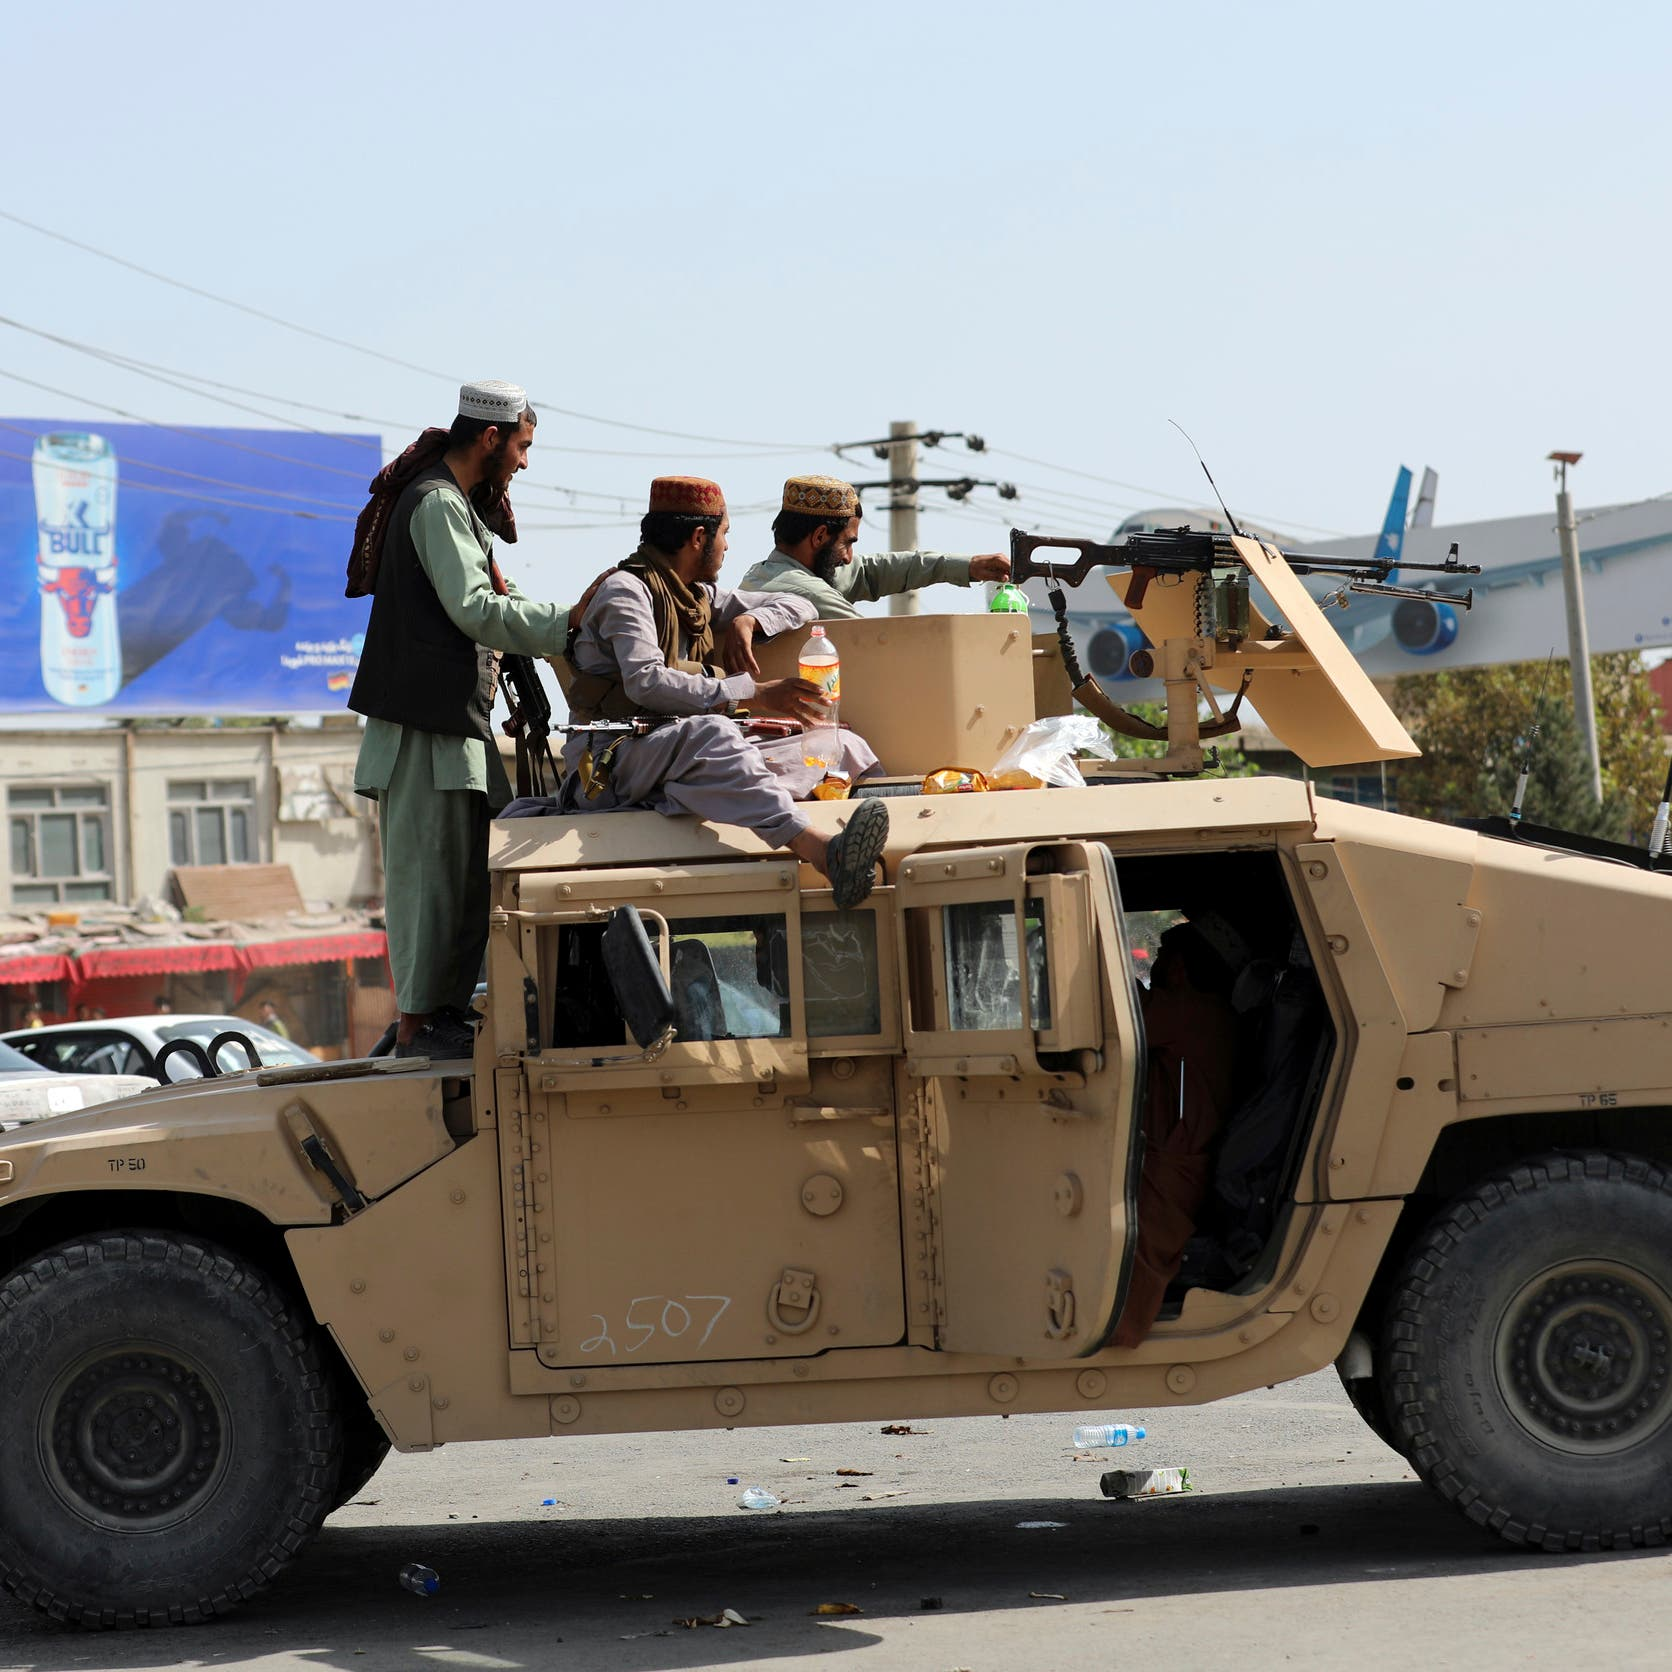 Videos of Taliban's weapons seizure in Afghanistan embarrass Washington